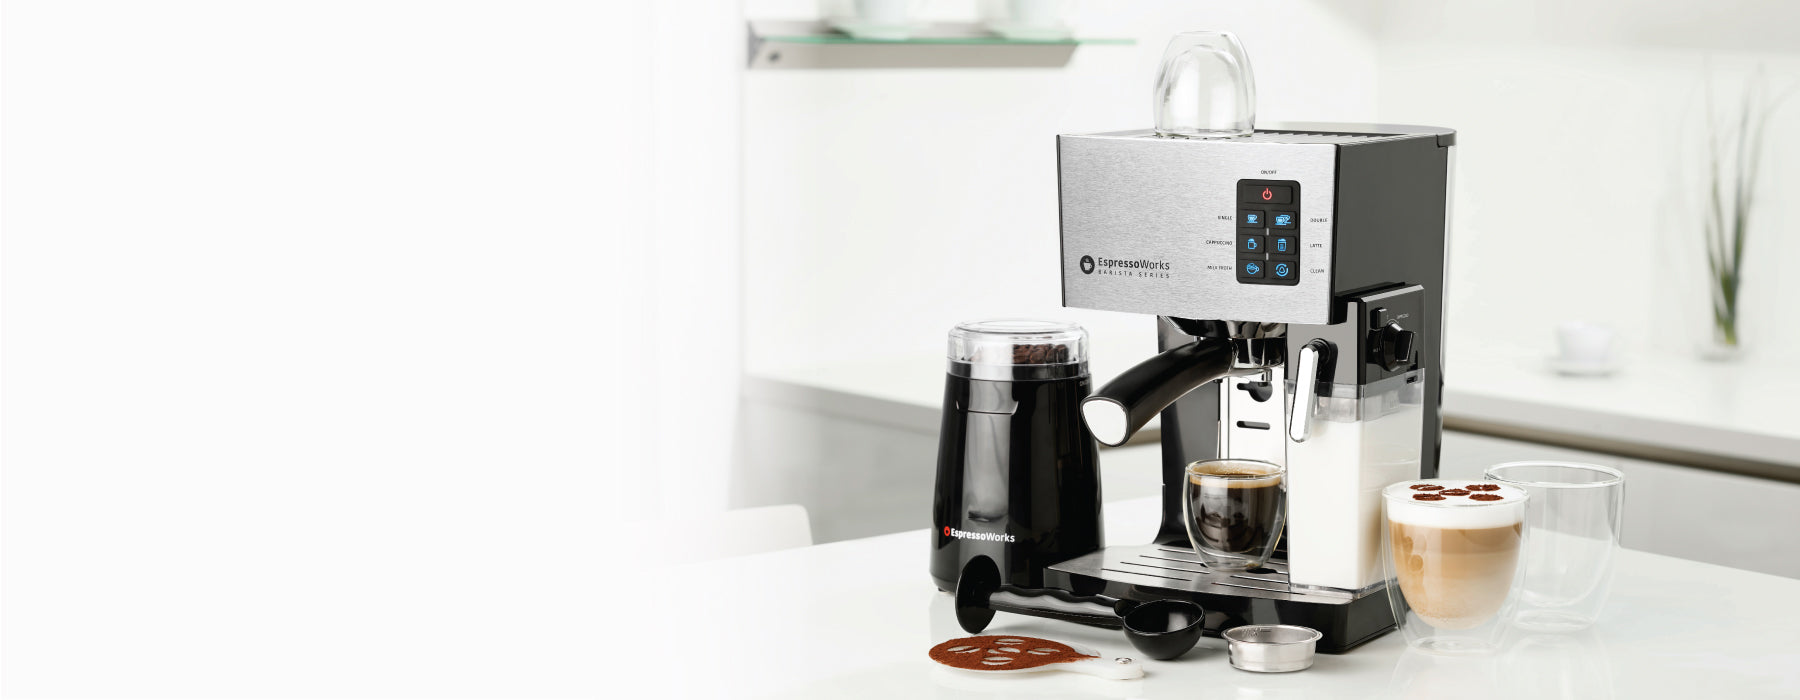 Click on the link to download the user guide for the 10-piece 19-bar EspressoWorks Espresso Machine Stainless Steel